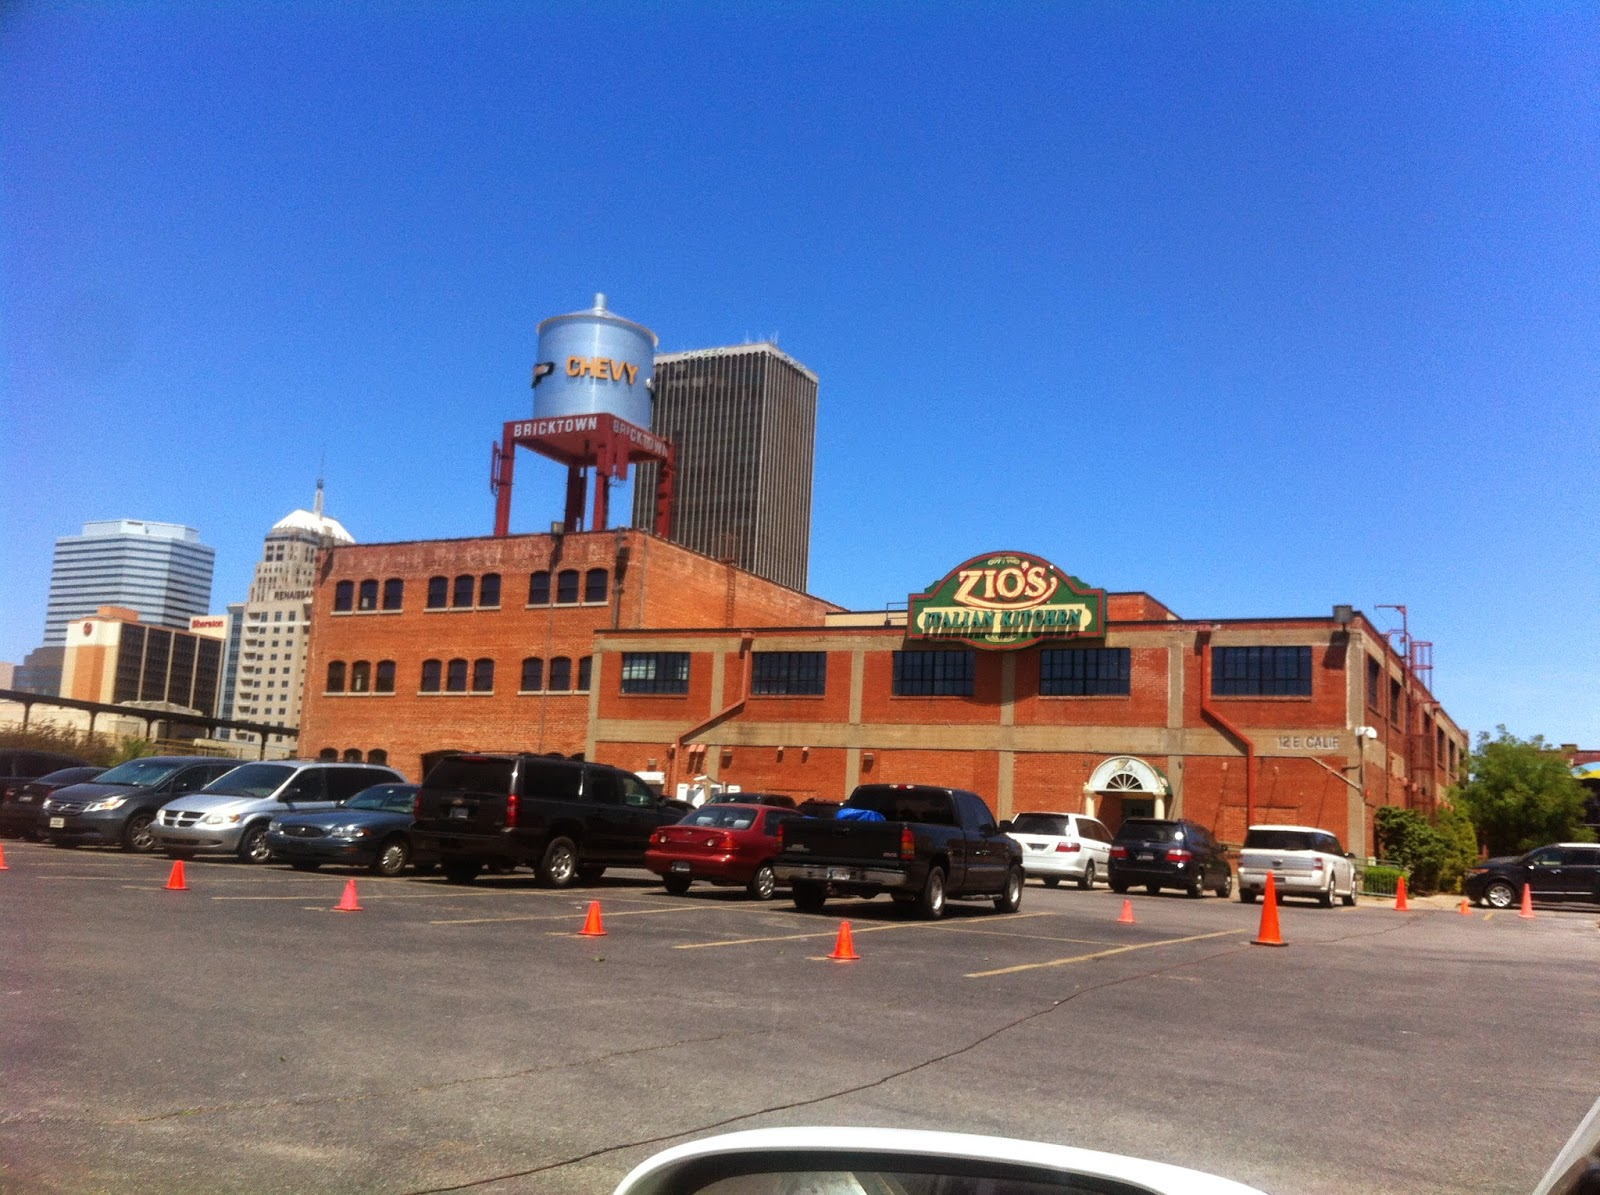 every time i drive by zios in bricktown the huge chevy water tower right beside it catches my eye i love how these businesses have taken old buildings and - Zios Italian Kitchen